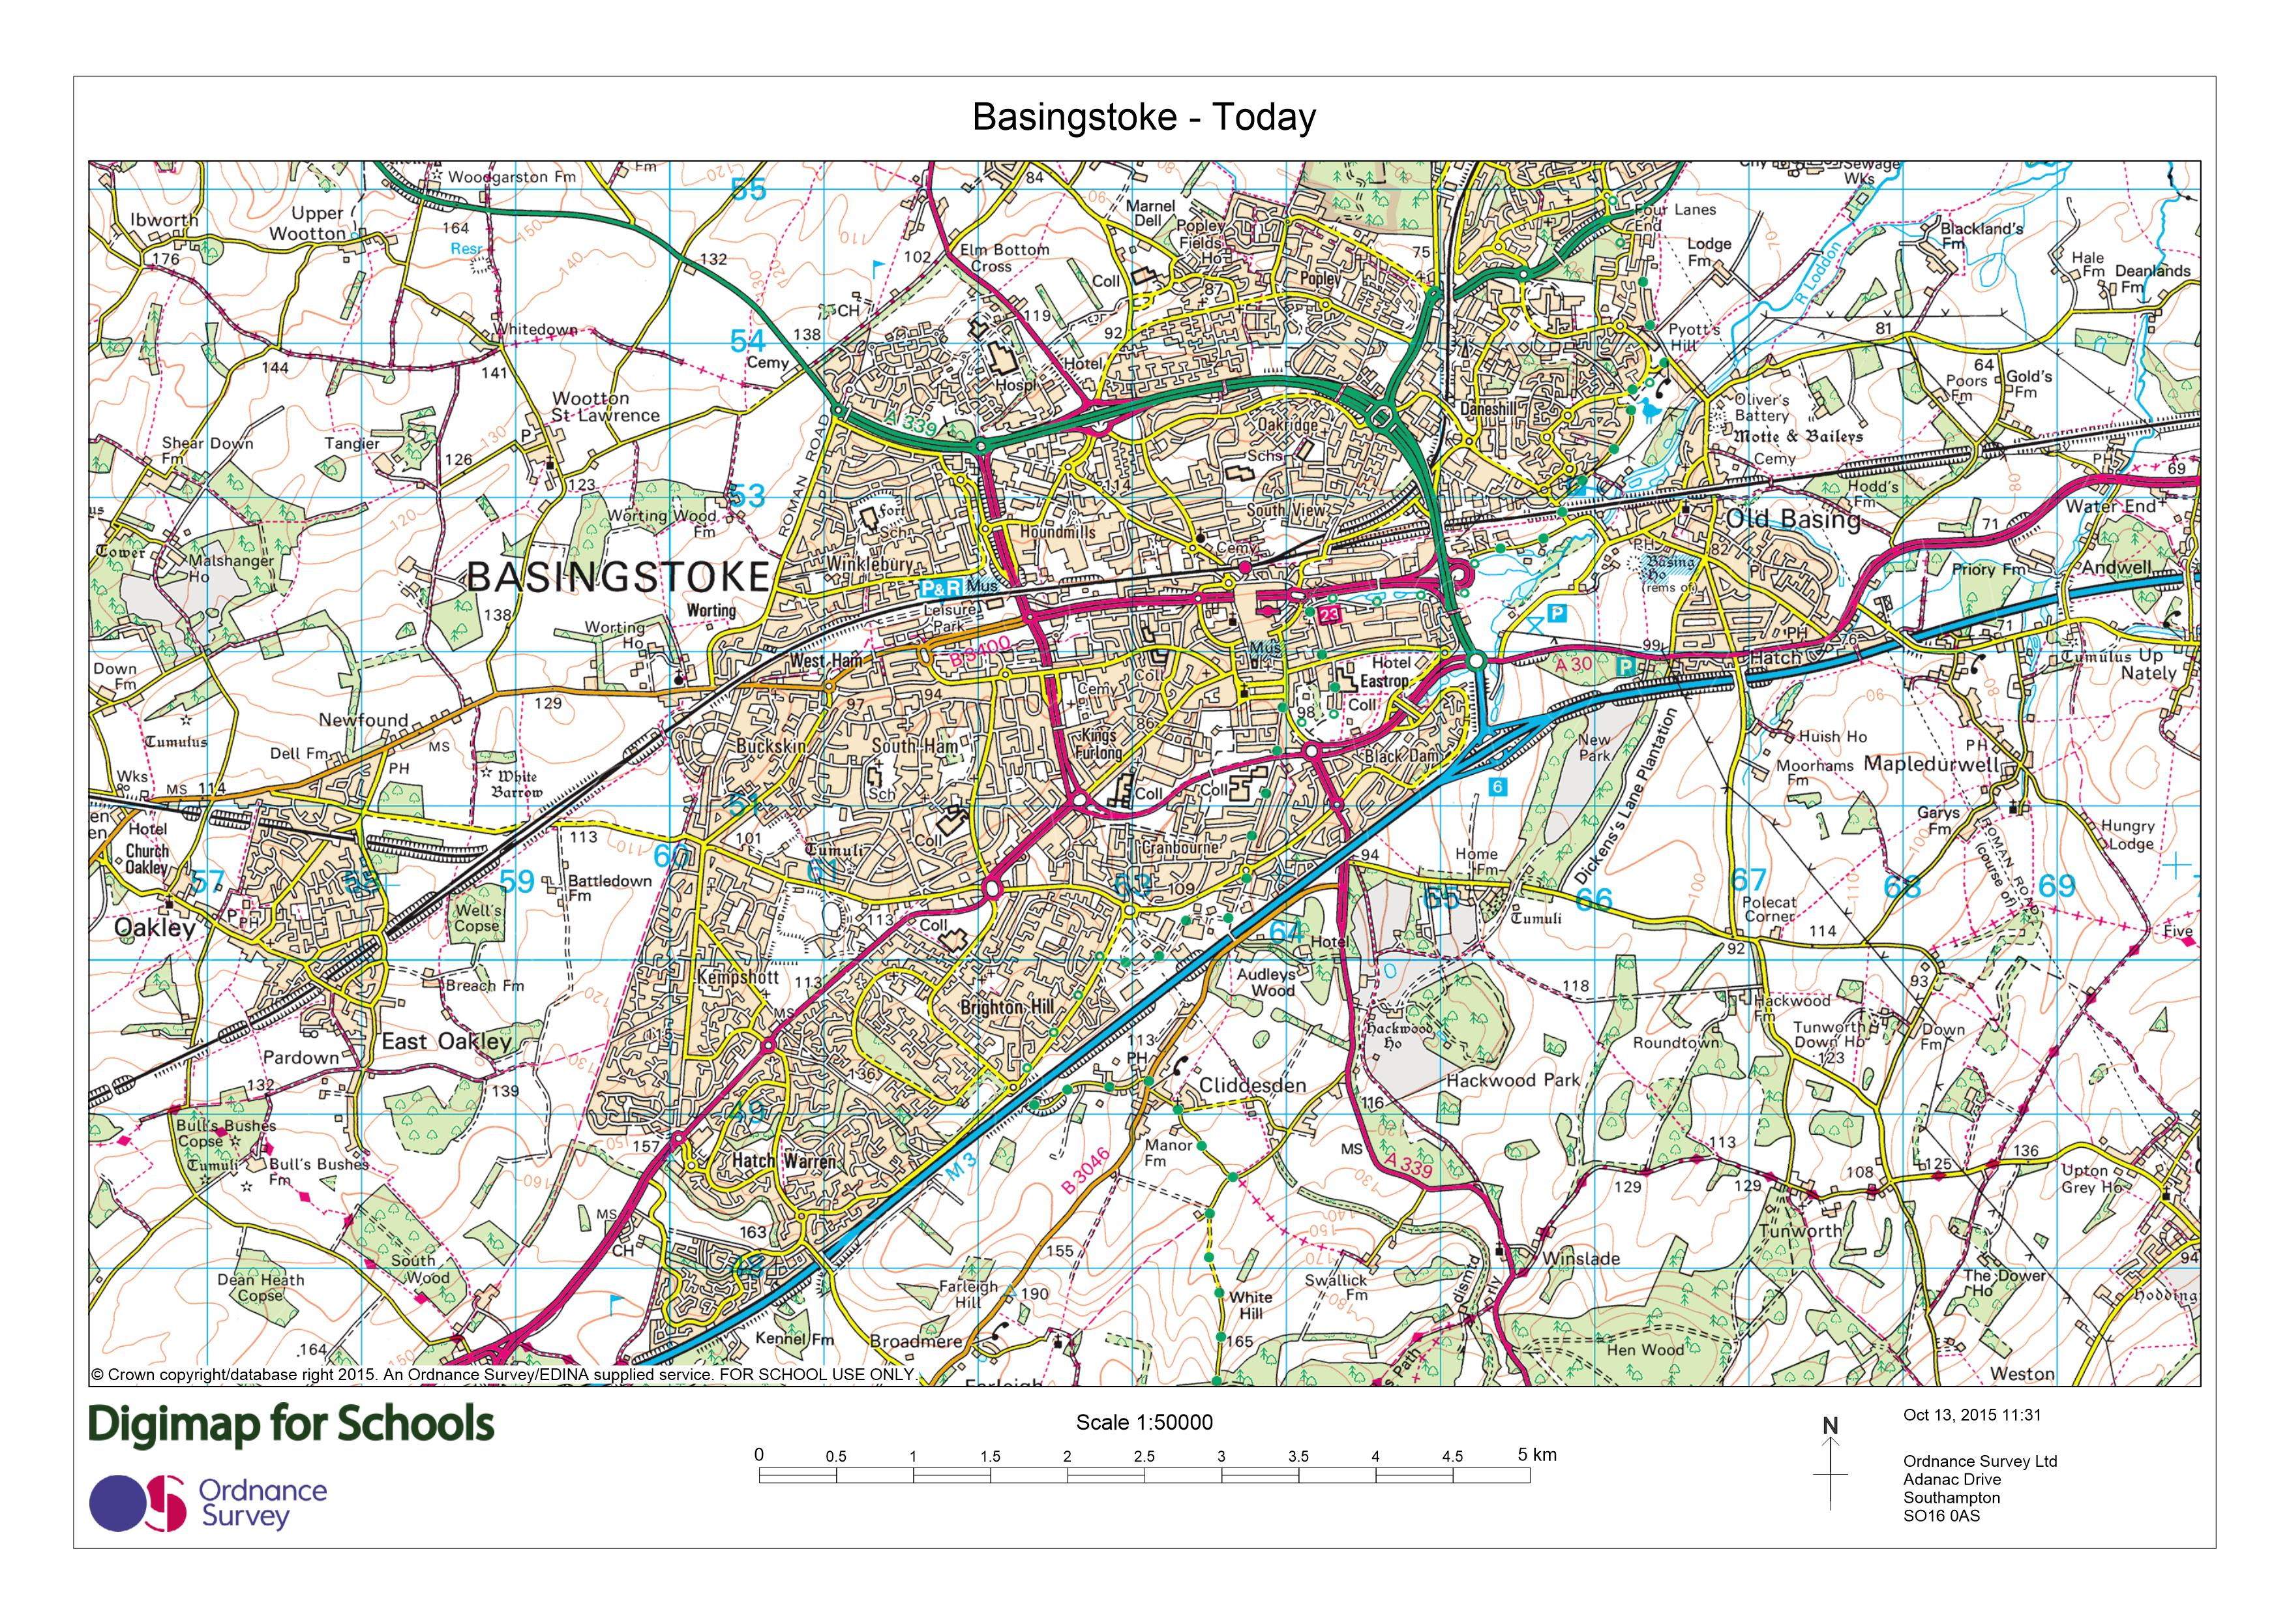 free apps for maps with Digimap For Schools Launches 1950s Maps Of Great Britain on Digimap For Schools Launches 1950s Maps Of Great Britain further Details furthermore Details furthermore From Venus To Neptune 6 Pla s 1 Webcam additionally App 609815.